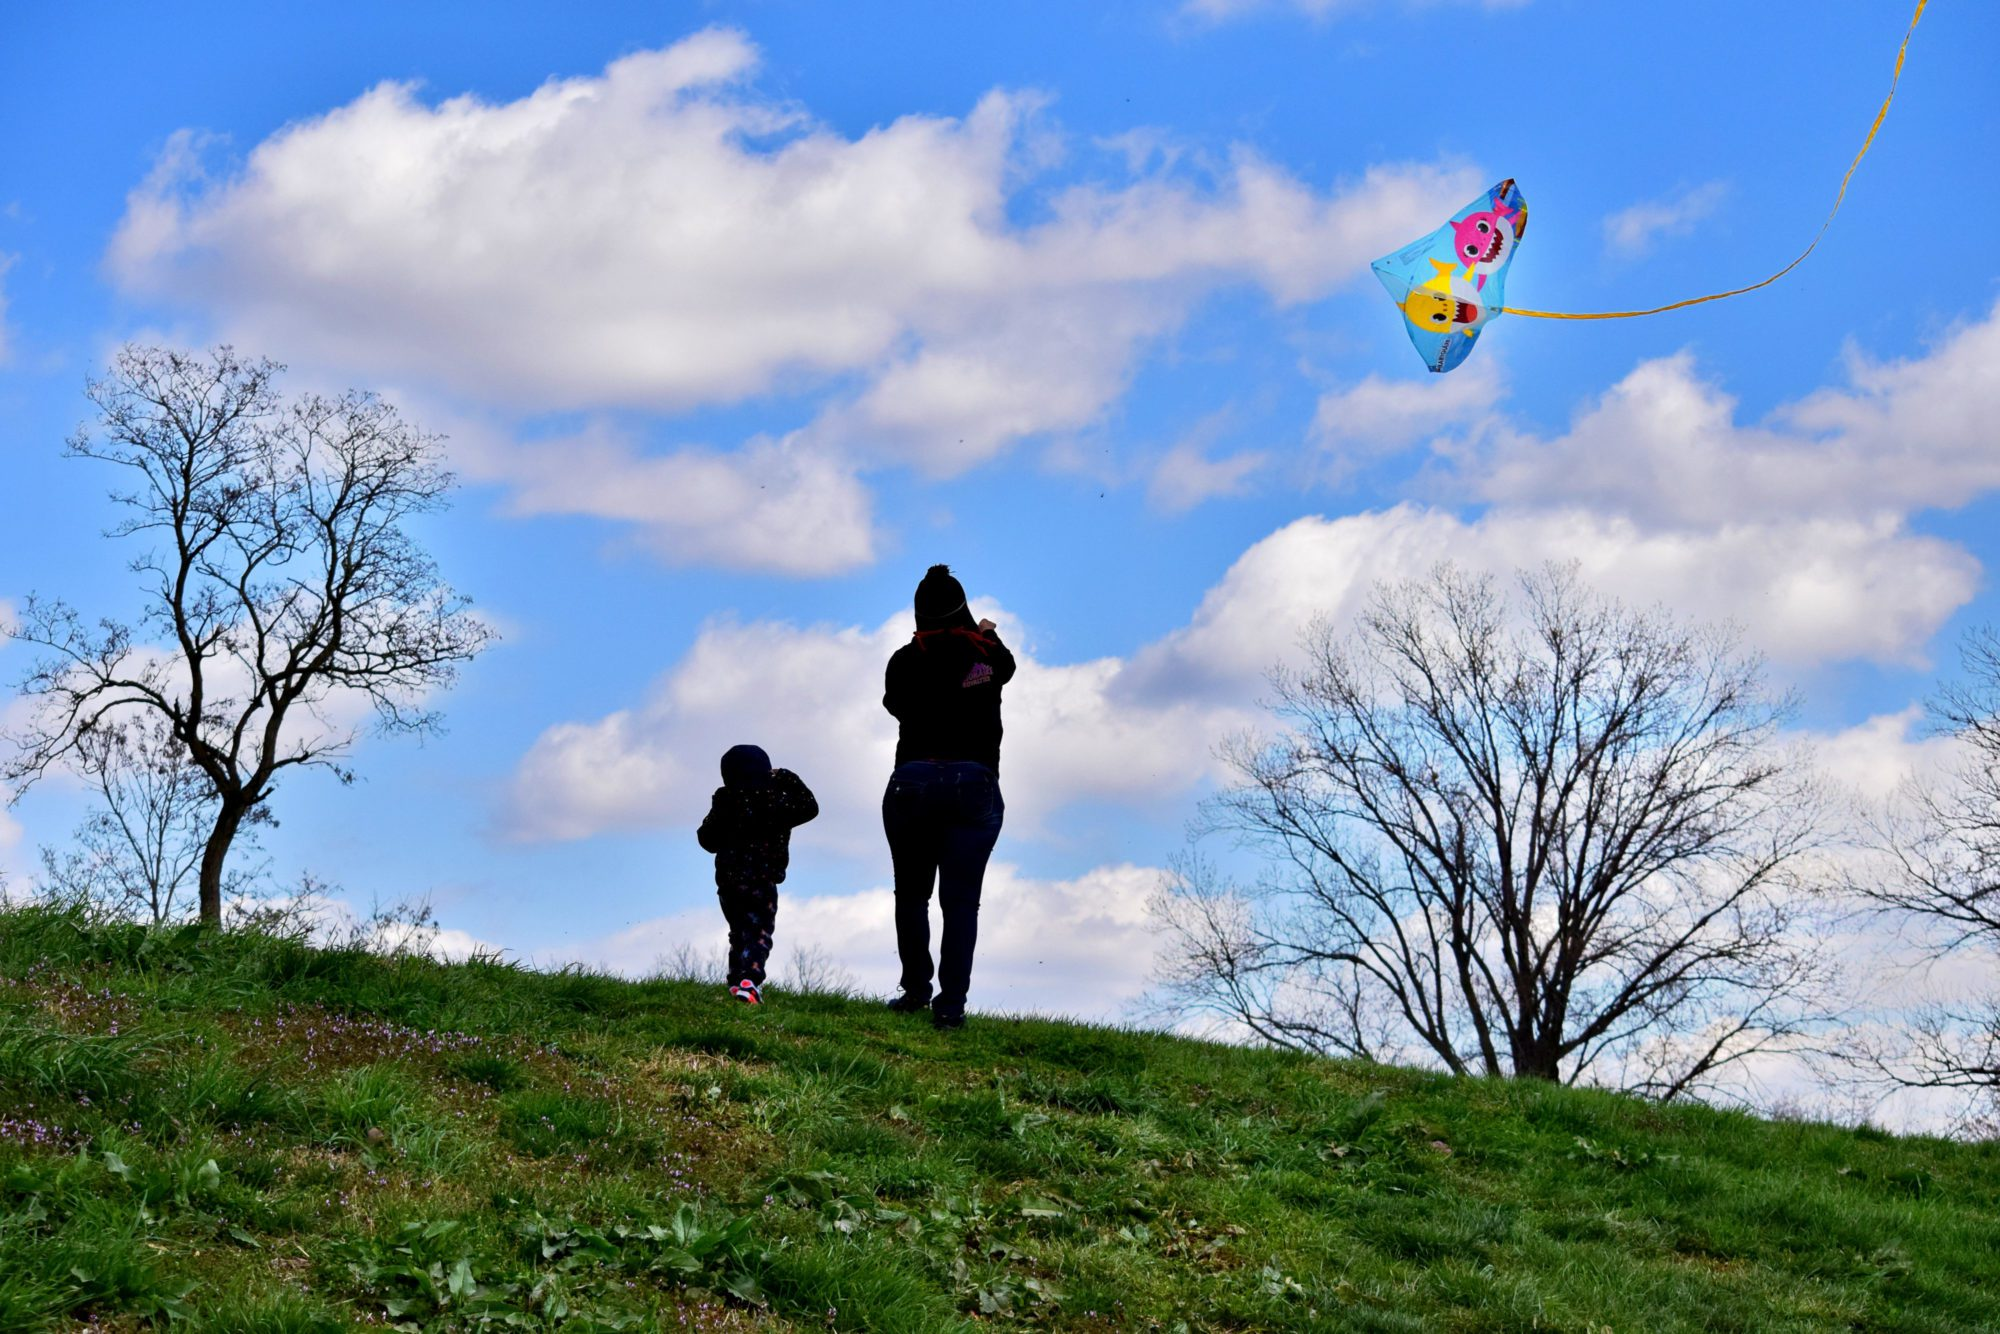 A mother and daughter fly a kite in Marquette Park in Dutchtown, St. Louis, MO.